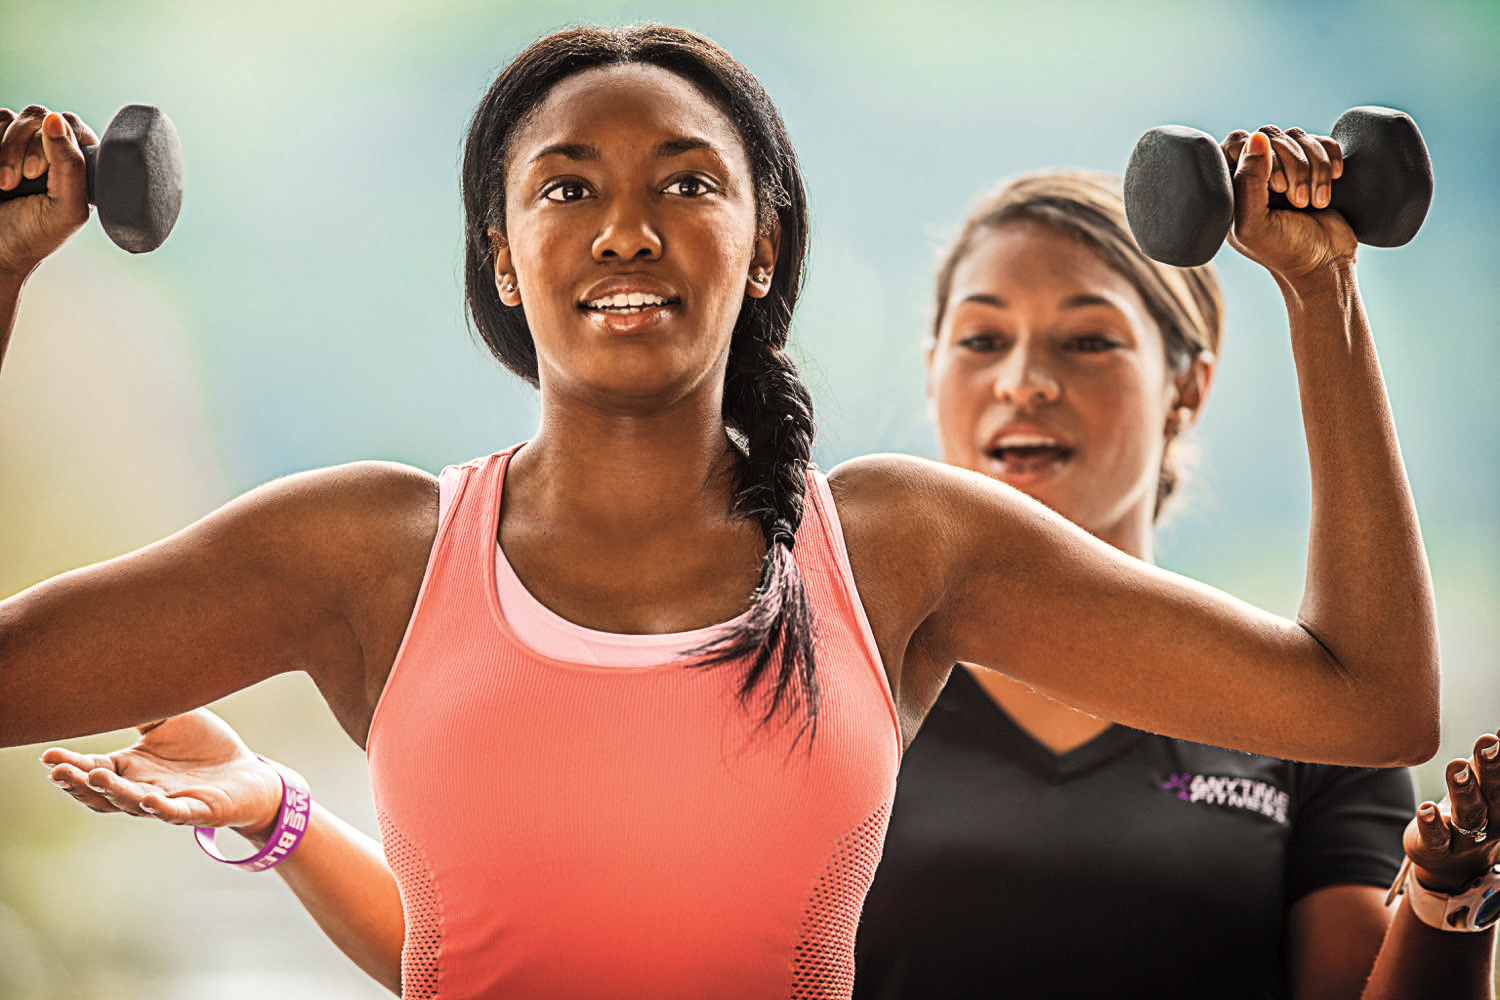 Anytime Fitness - Gym in Greensboro, NC 27410